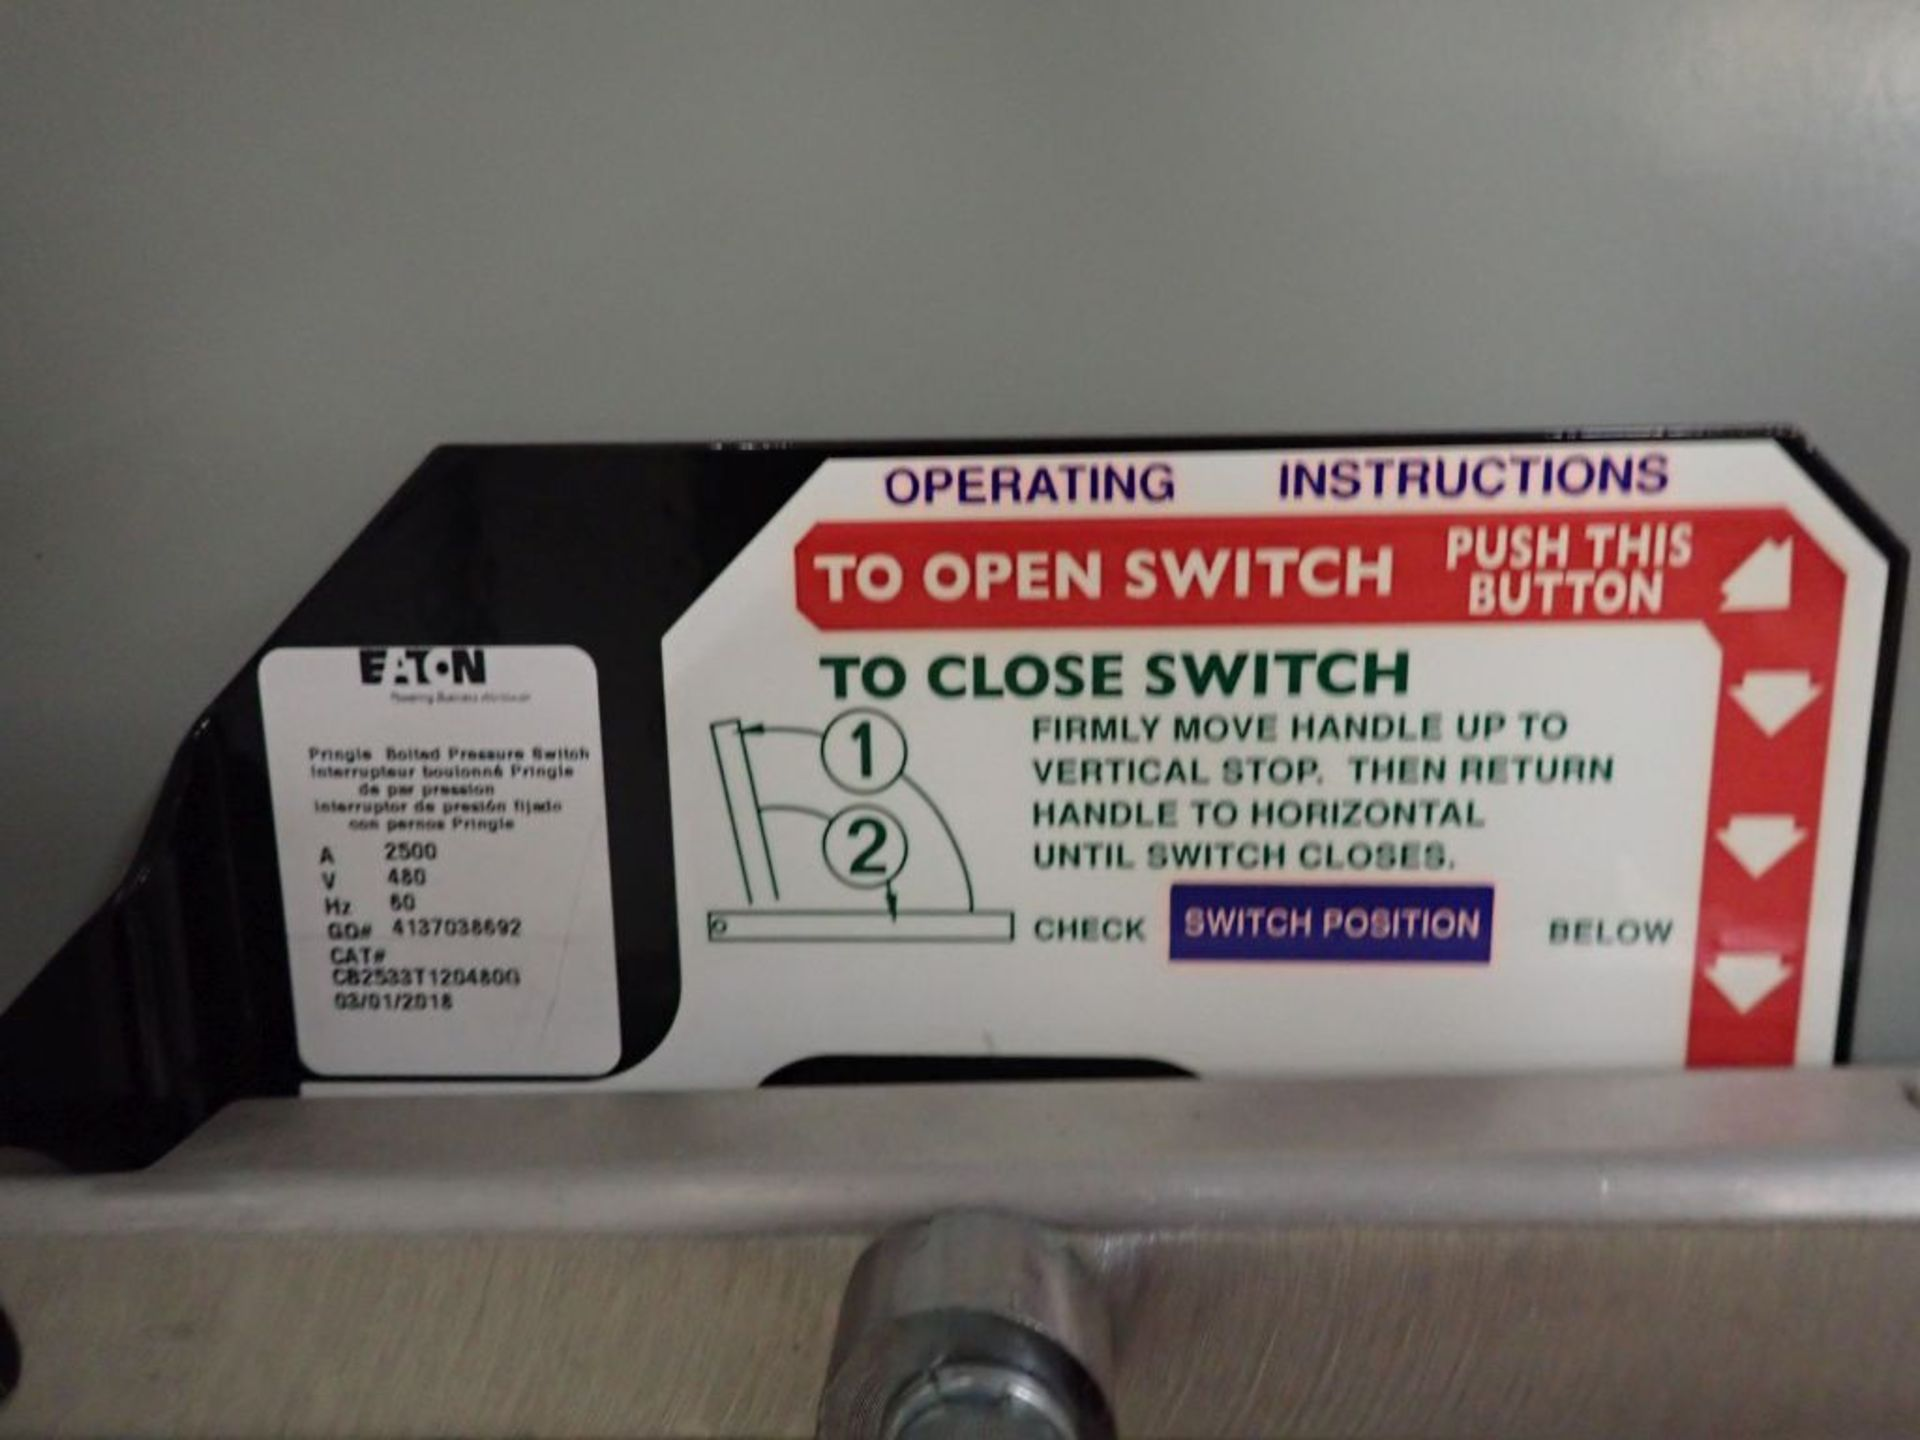 Eaton Pow-R-Line Switchboard   PRL-C; 480V; 3 PH; (1) Pringle Bolted Pressure Switch, 2500A, Cat No. - Image 11 of 13